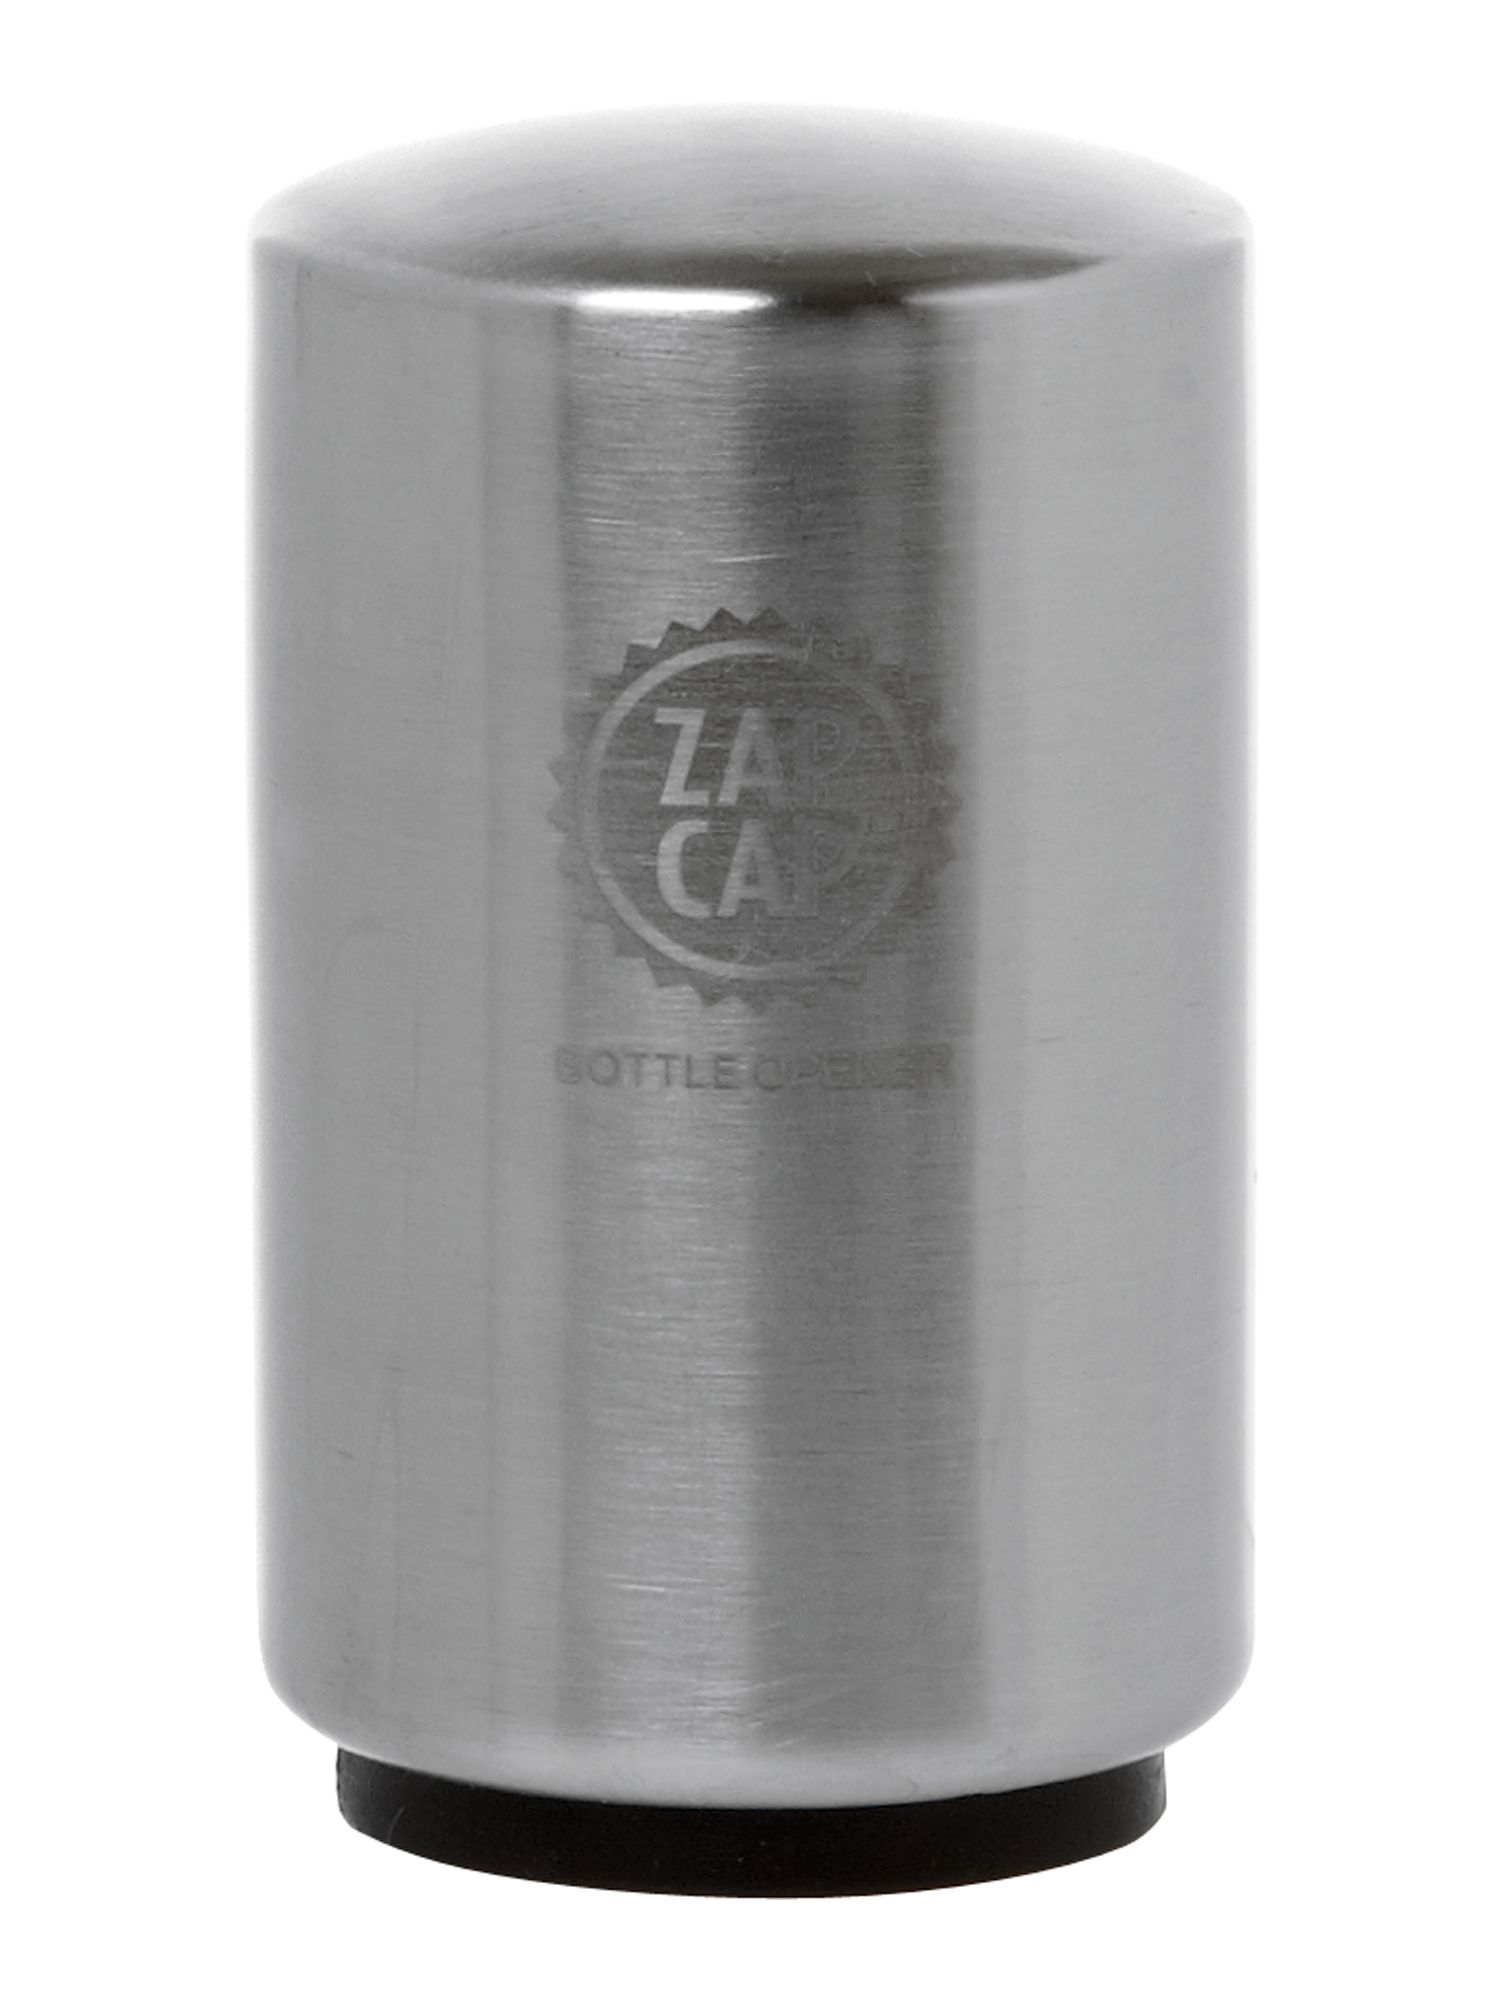 Zap Cap stainless steel bottle opener